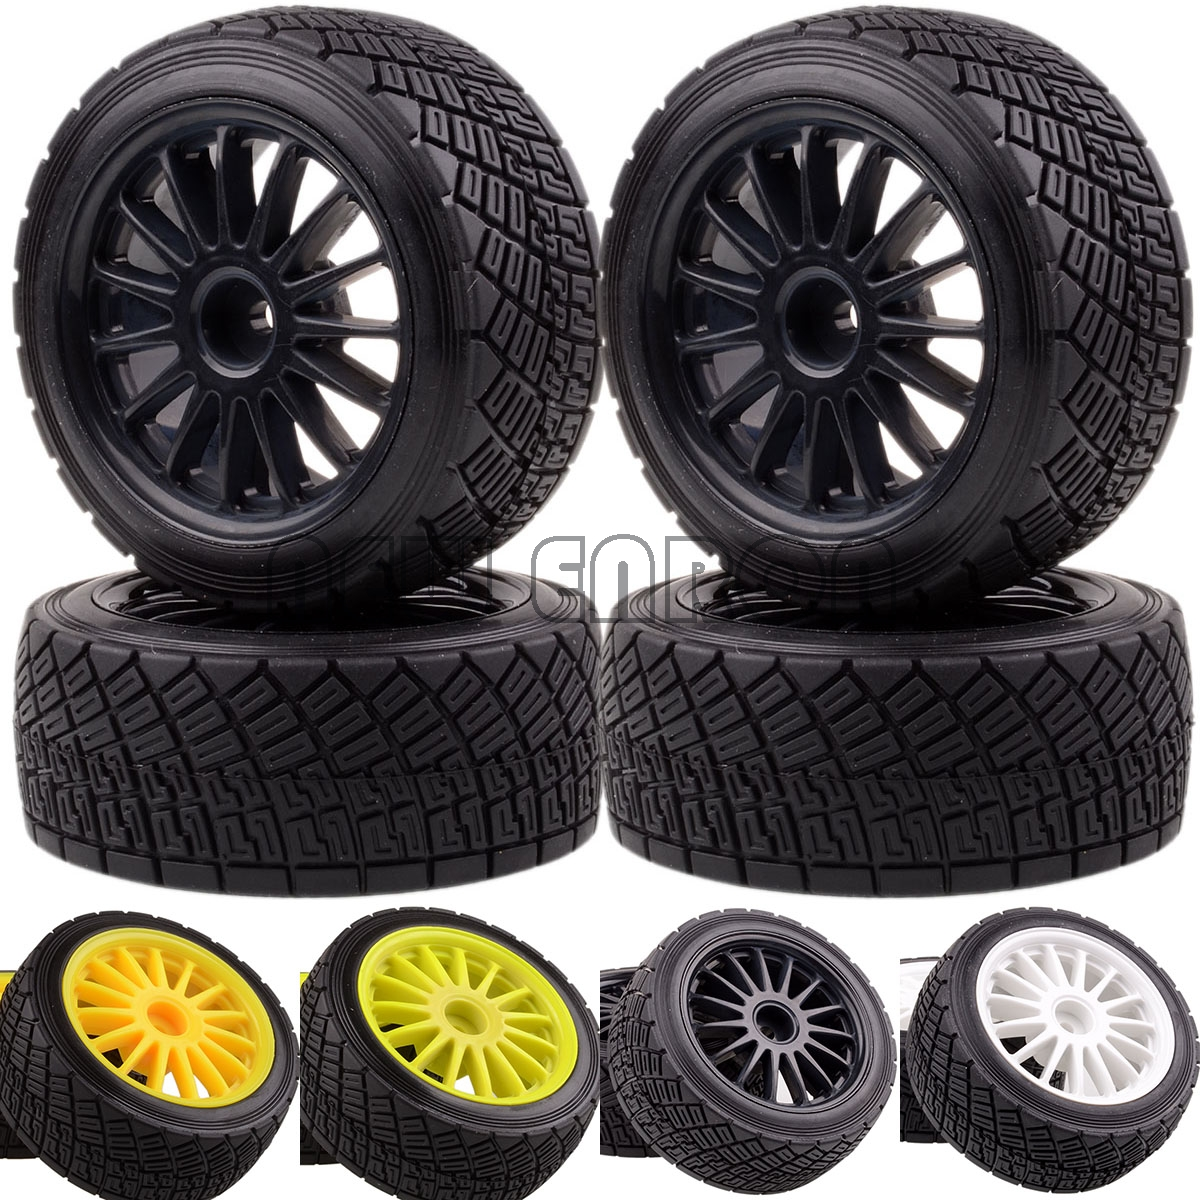 NEW ENRON 4P 2.2 Inch Wheel Rims Hub & 80MM Tires Tyre <font><b>RC</b></font> CAR PART <font><b>RC</b></font> CAR 1/10 Fit <font><b>1:10</b></font> <font><b>HPI</b></font> WR8 Flux Rally 3.0 110697 94177 image